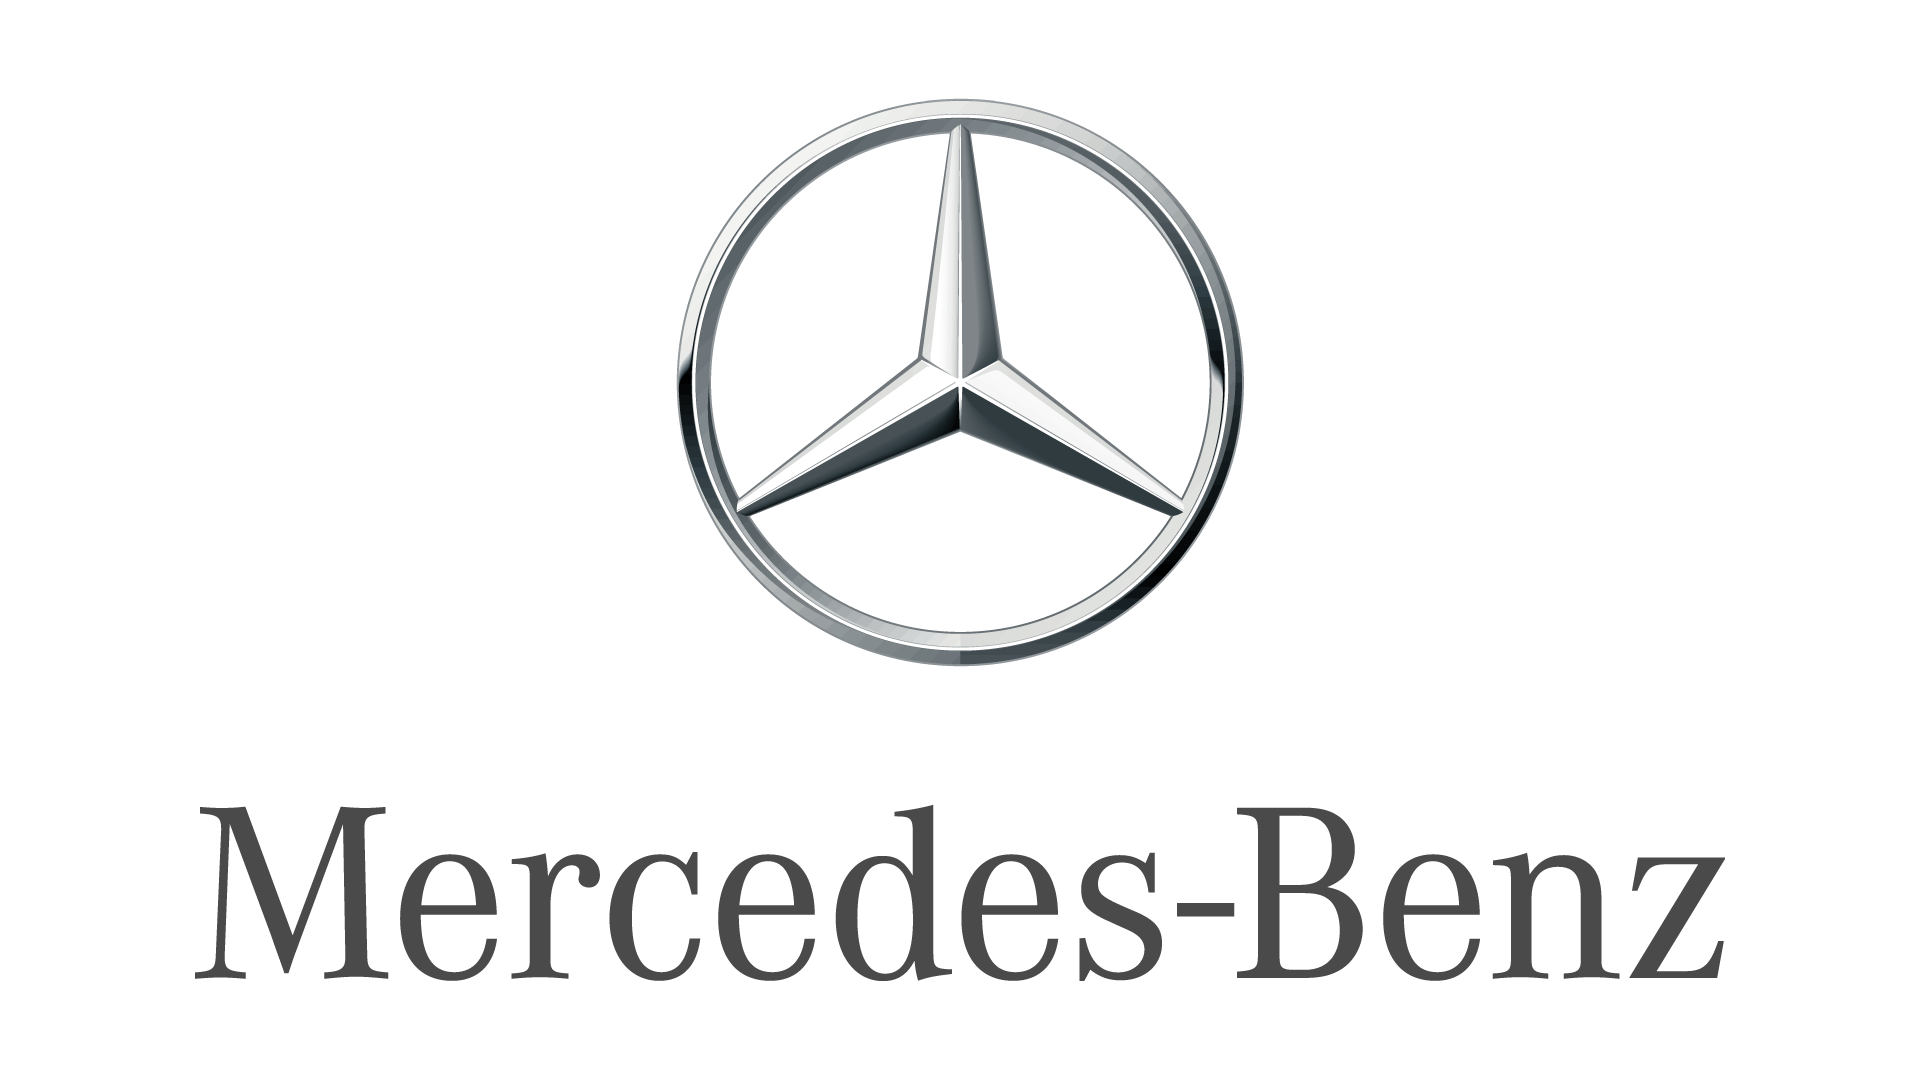 Flexzelt - Flextent - Referenties - Mercedes Benz